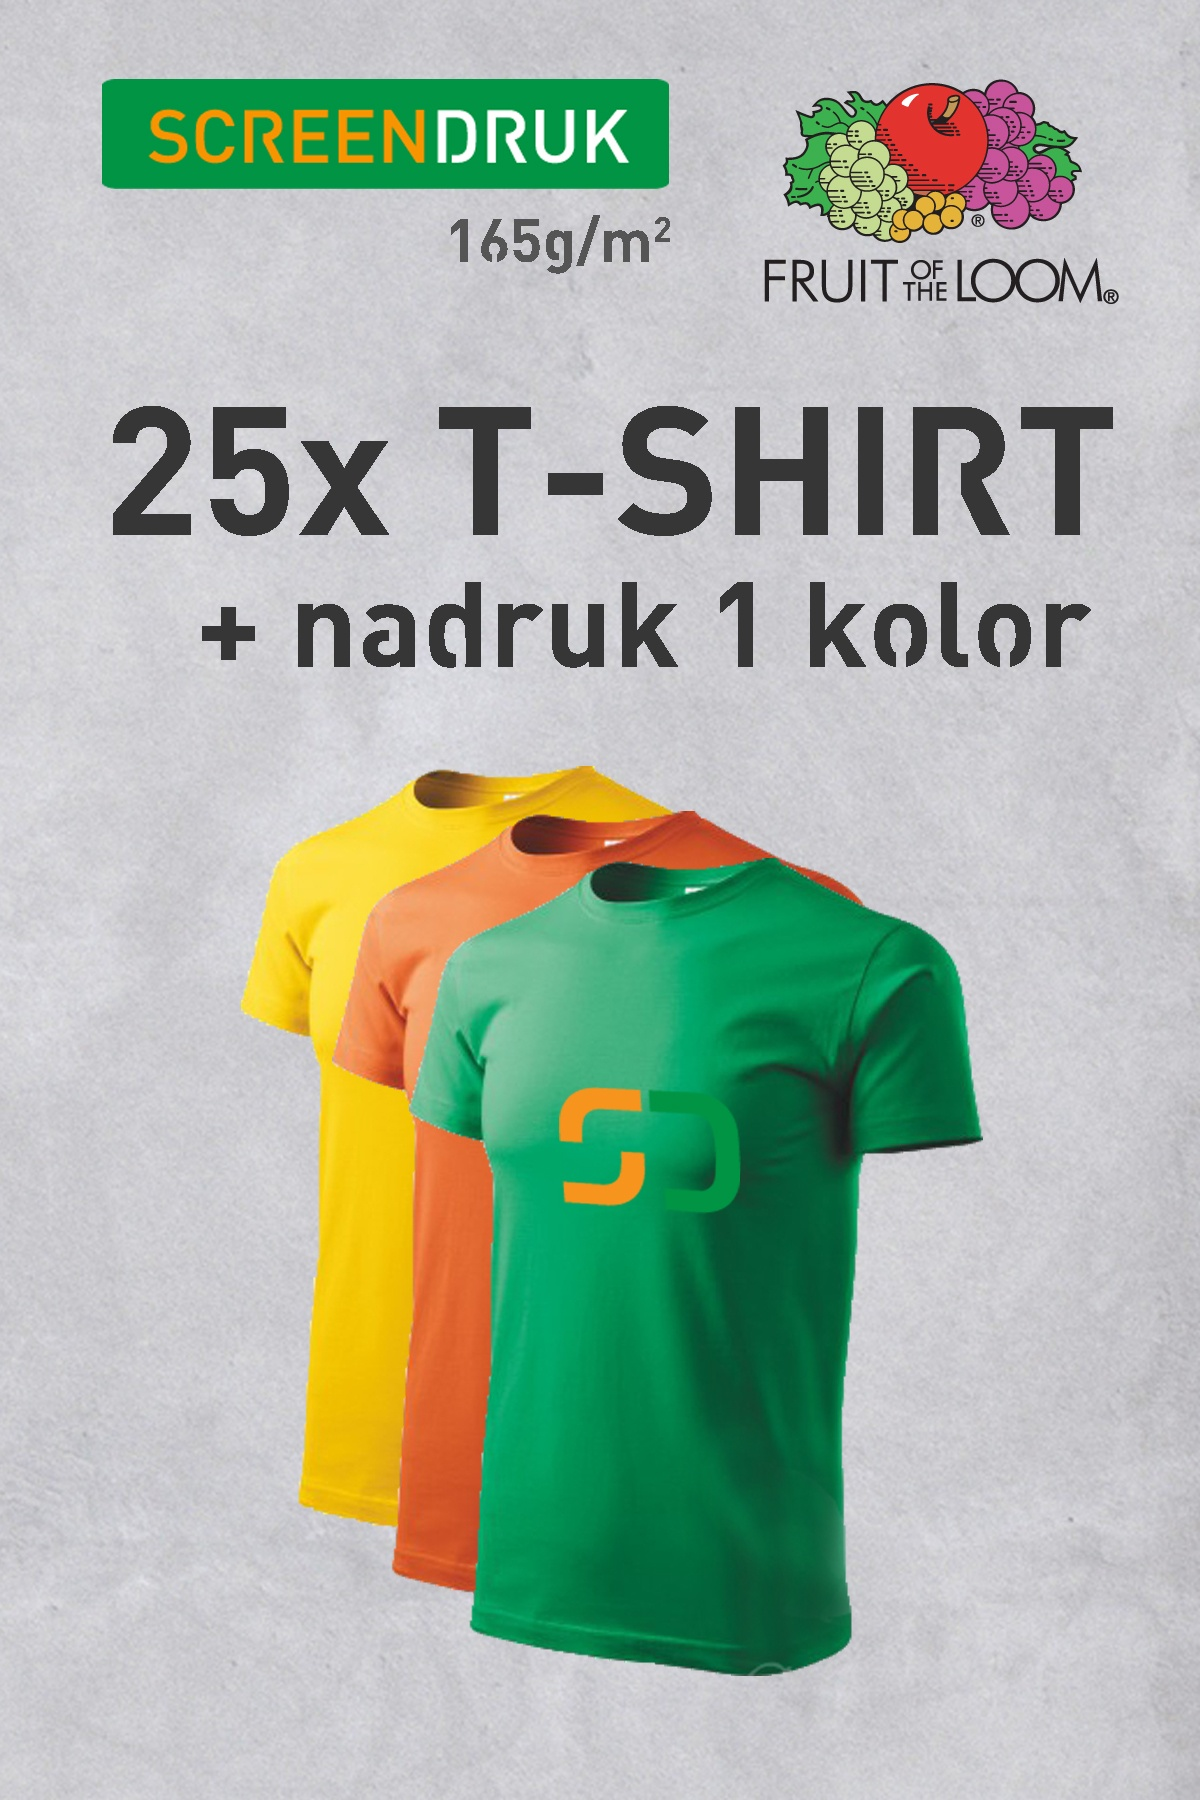 25szt. Kolorowy T-shirt FRUIT OF THE LOOM 165g + nadruk 1 kolor